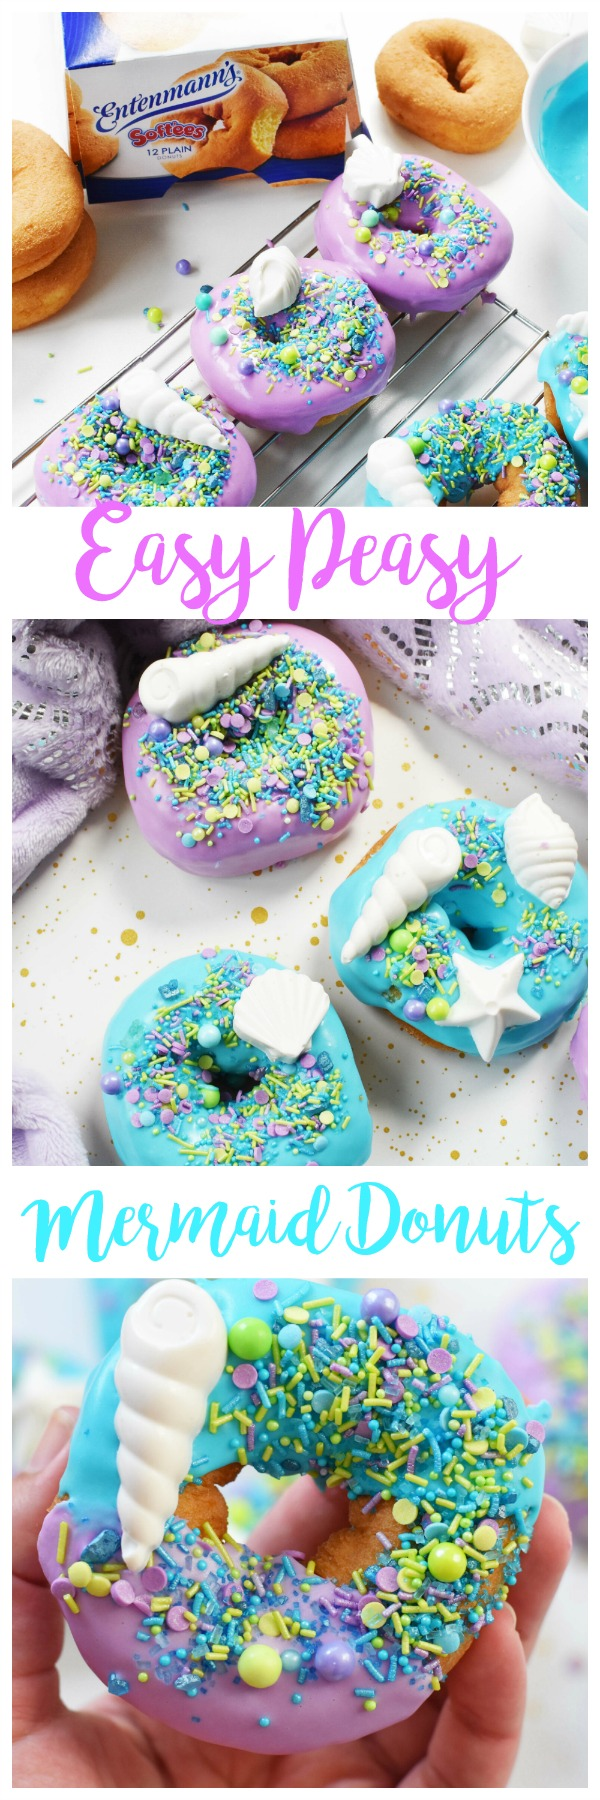 Colorful Mermaid Party Donuts with Candy Shells in Minutes!